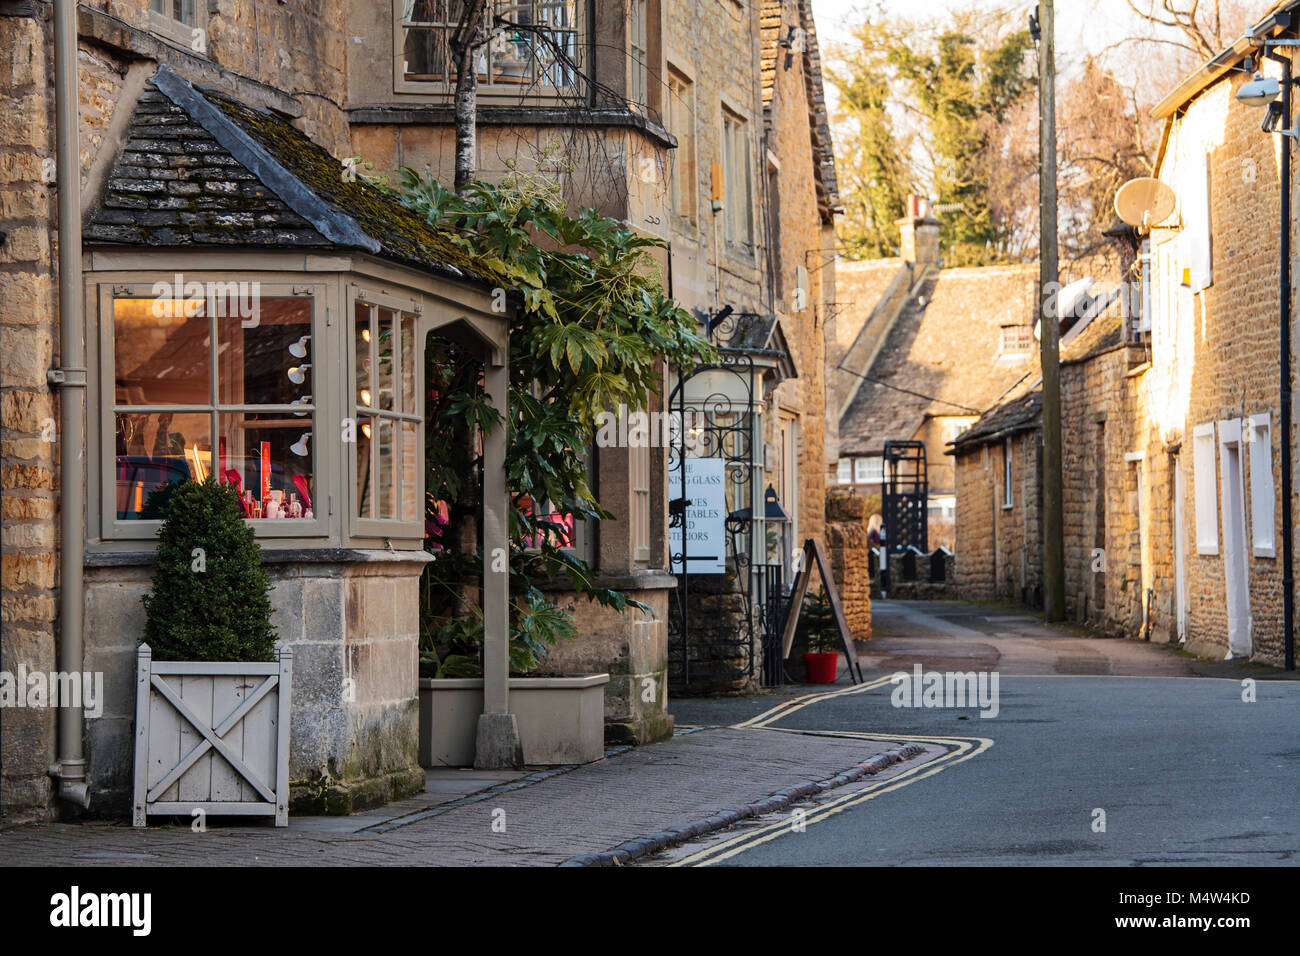 BOURTON ON THE WATER, UK - FEBRUARY 15th, 2018: Old houses and shops in Bourton-on-the-Water, which  is a village - Stock Image